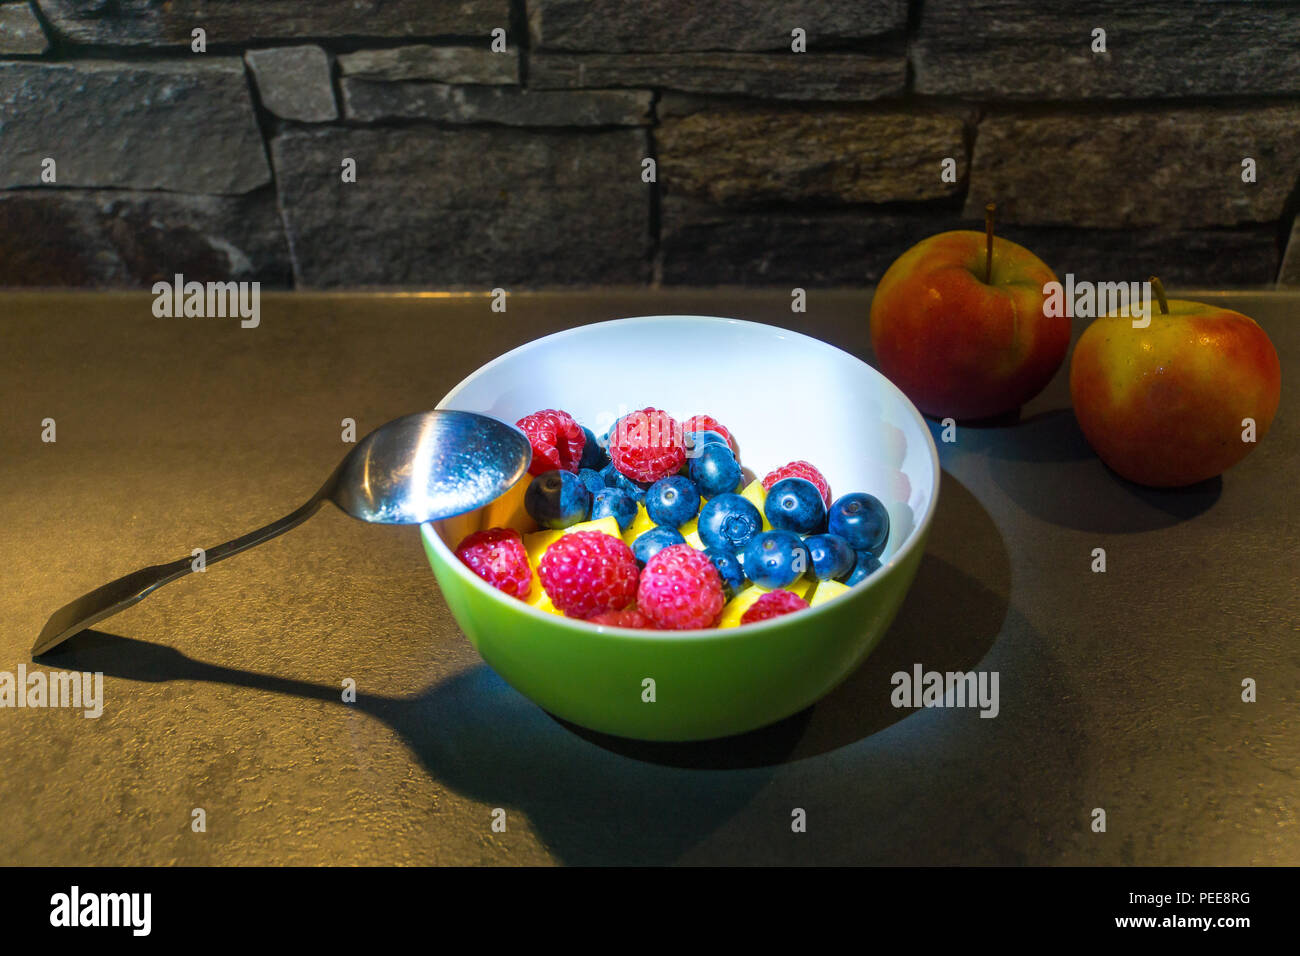 Two Apples And Colorful Healthy Fruit Mix In Dish Stock